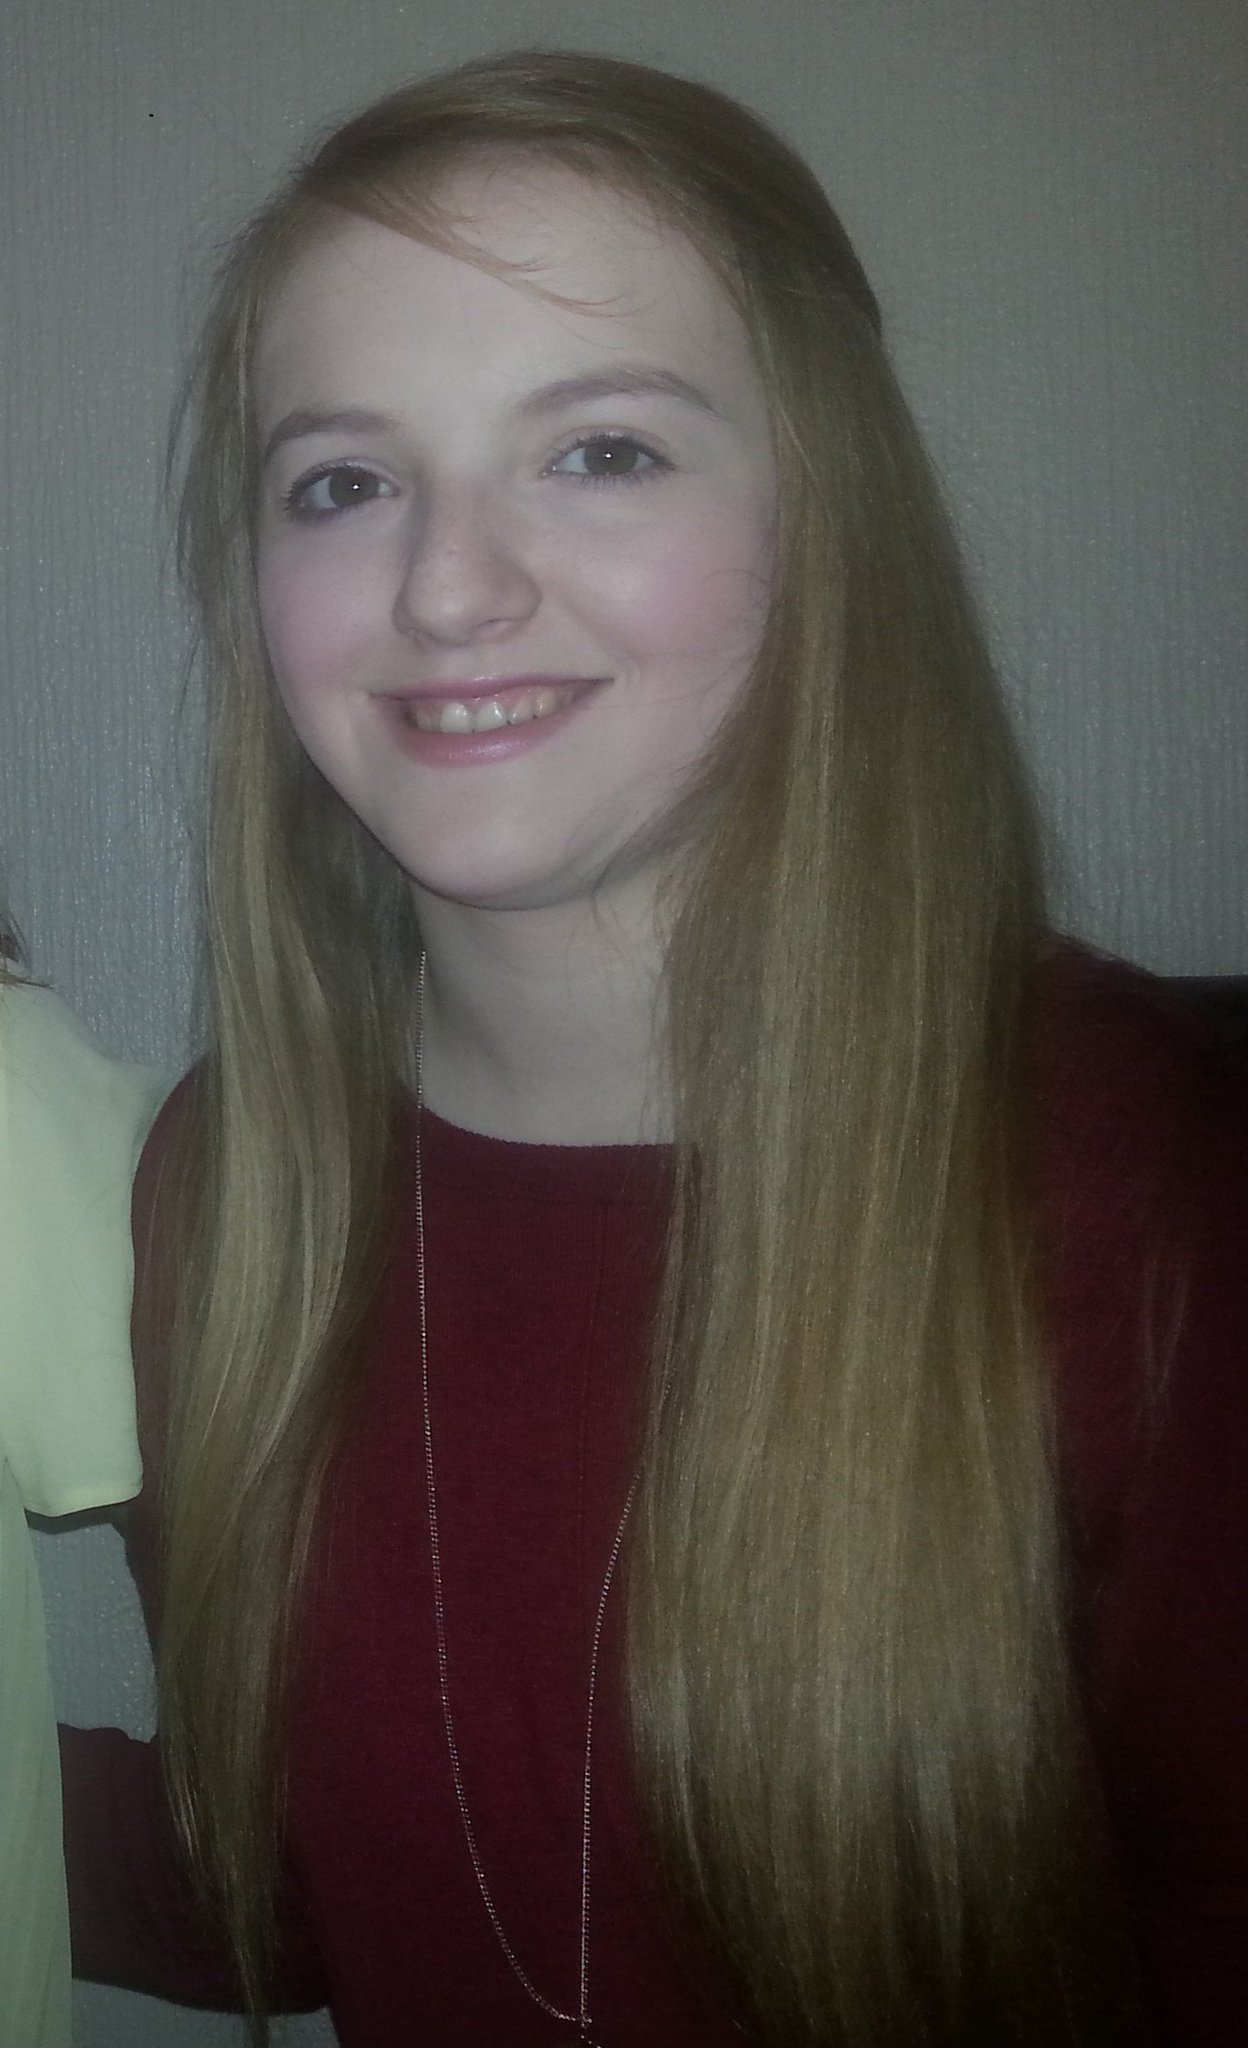 RT @RadioClydeNews: MISSING: 18 y/o Sarah Goldie from Renfrew last seen on Friday. Her bag was found near the River Clyde in Glasgow https:…